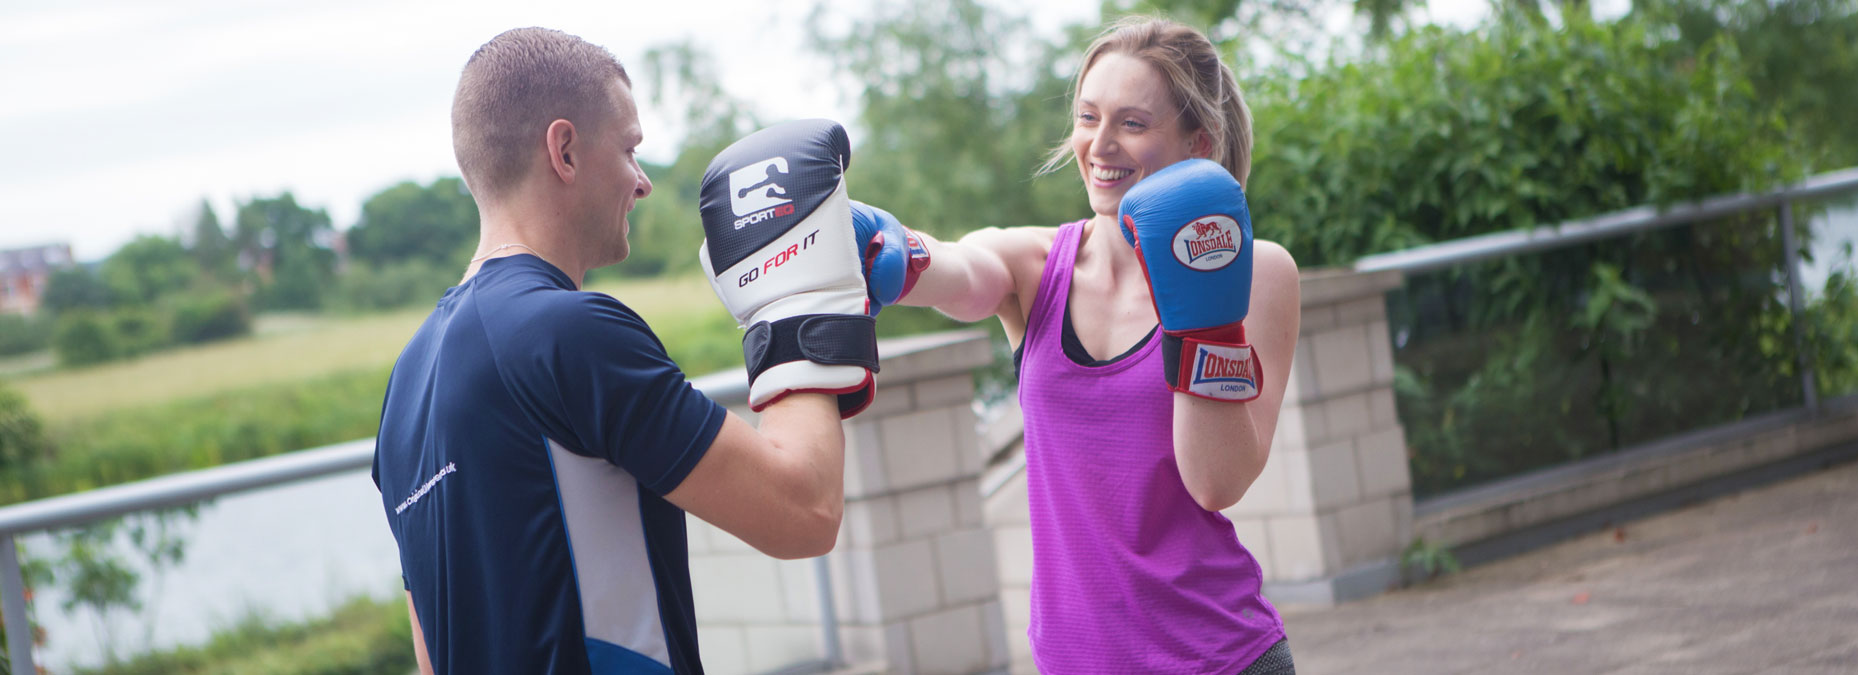 Personal Training in Nottingham